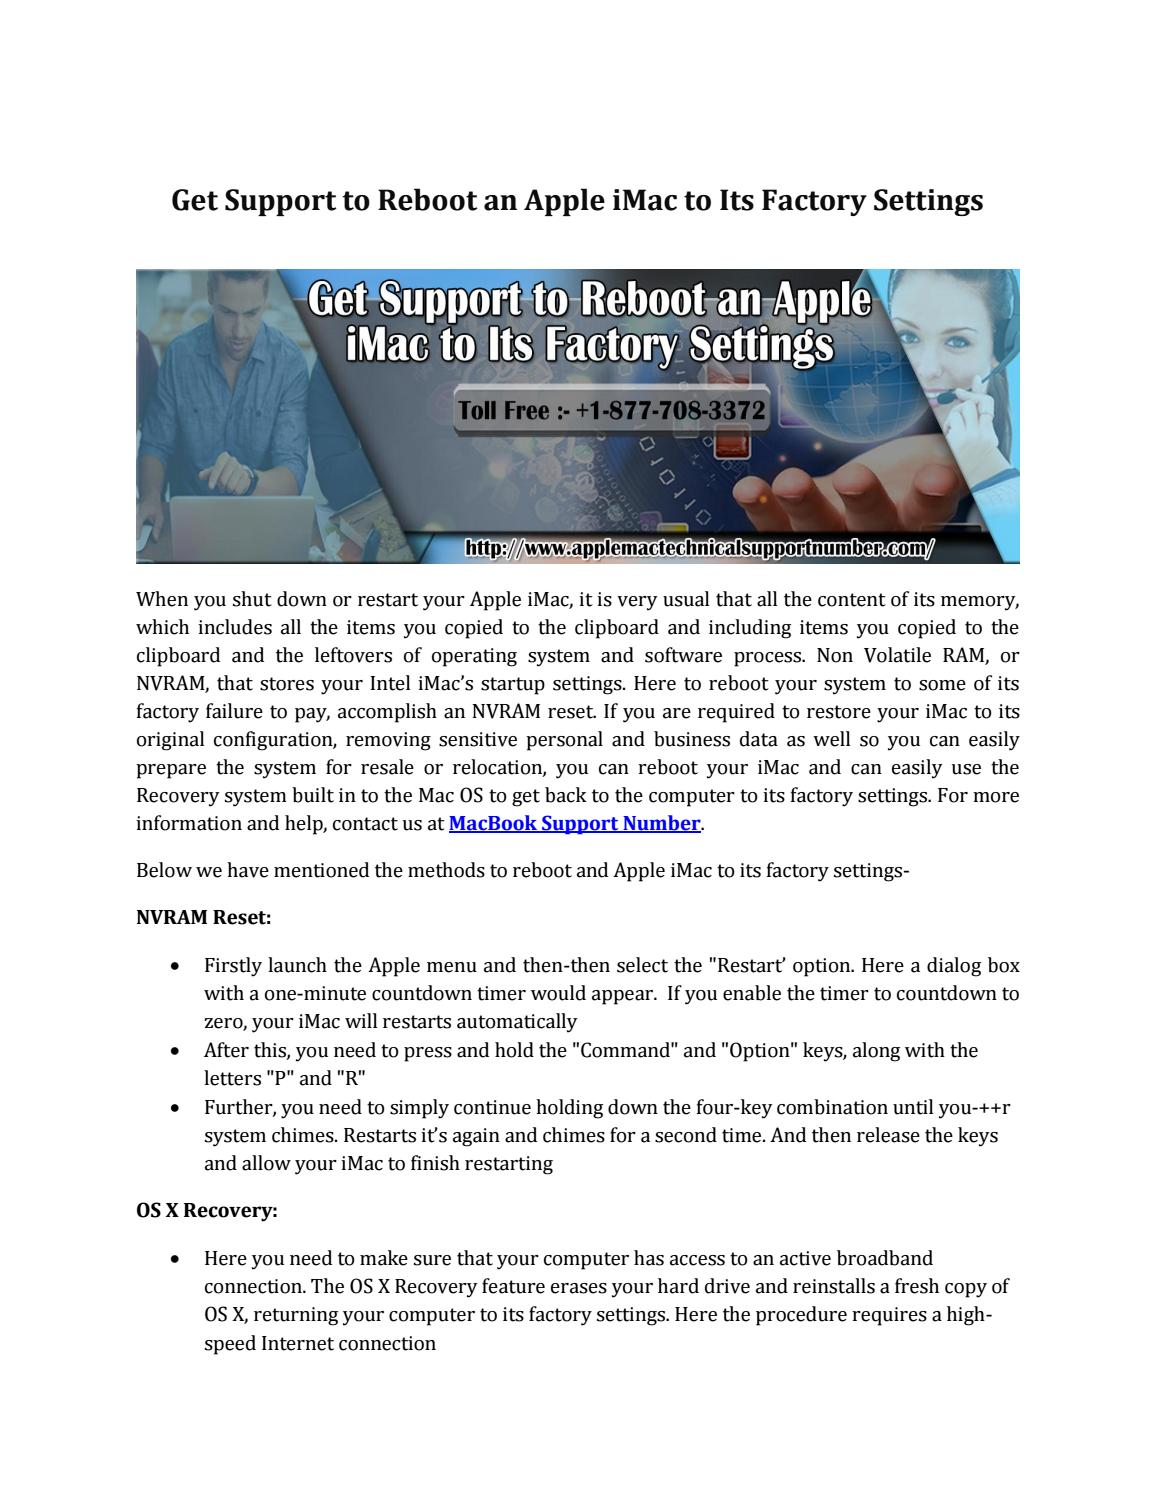 Get Support to Reboot an Apple iMac to Its Factory Settings